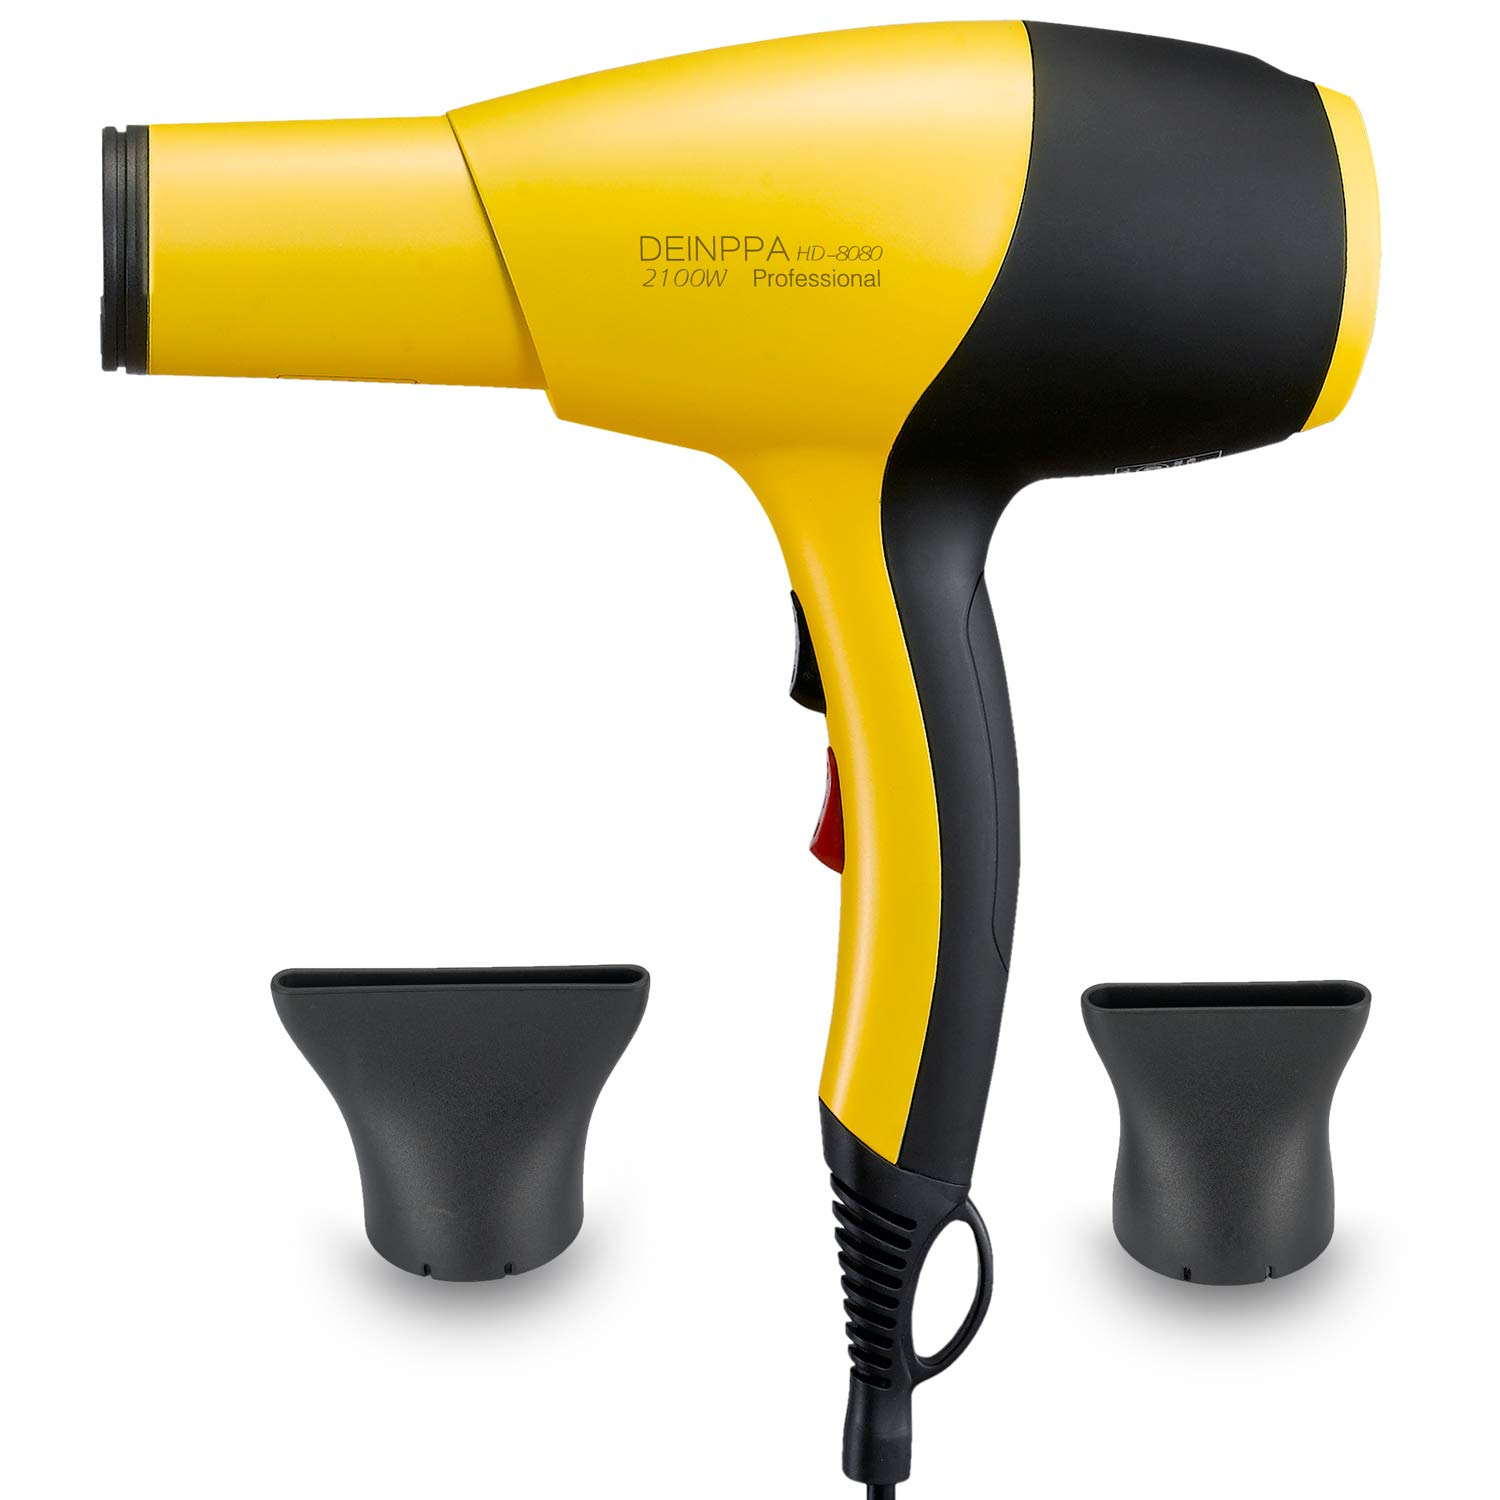 Deinppa Ionic Hair Dryer AC 2100W Professional Salon Blow Dryer Low Noise Fast Dry with Ceramic+Tourmaline Technology With GFCI